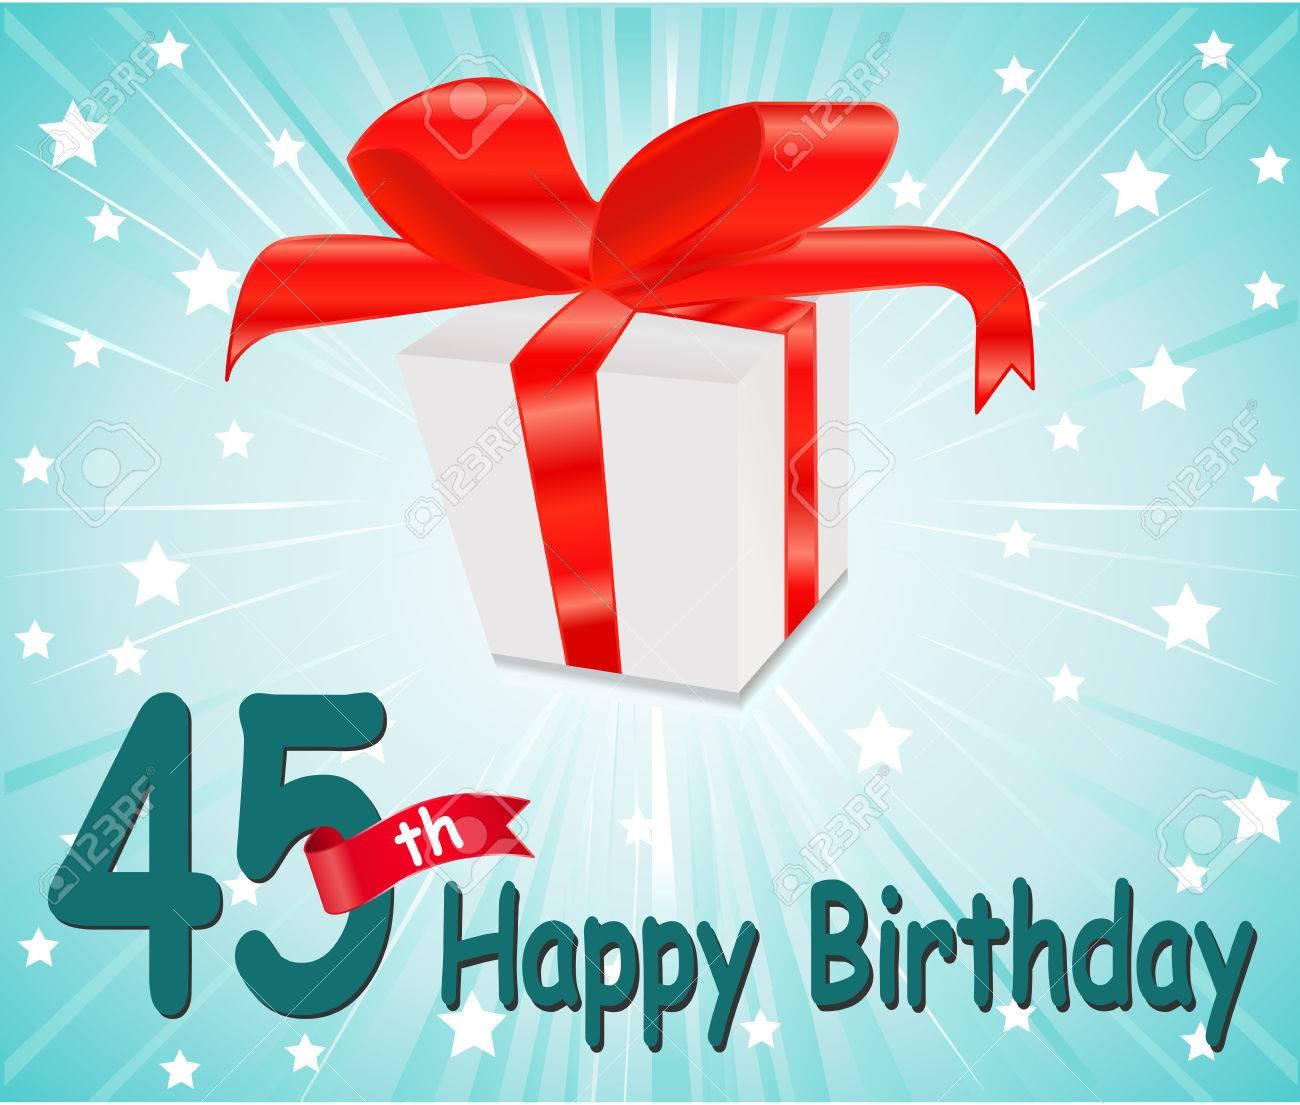 45 Year Happy Birthday Card With Gift And Colorful Background In Vector EPS10 Stock